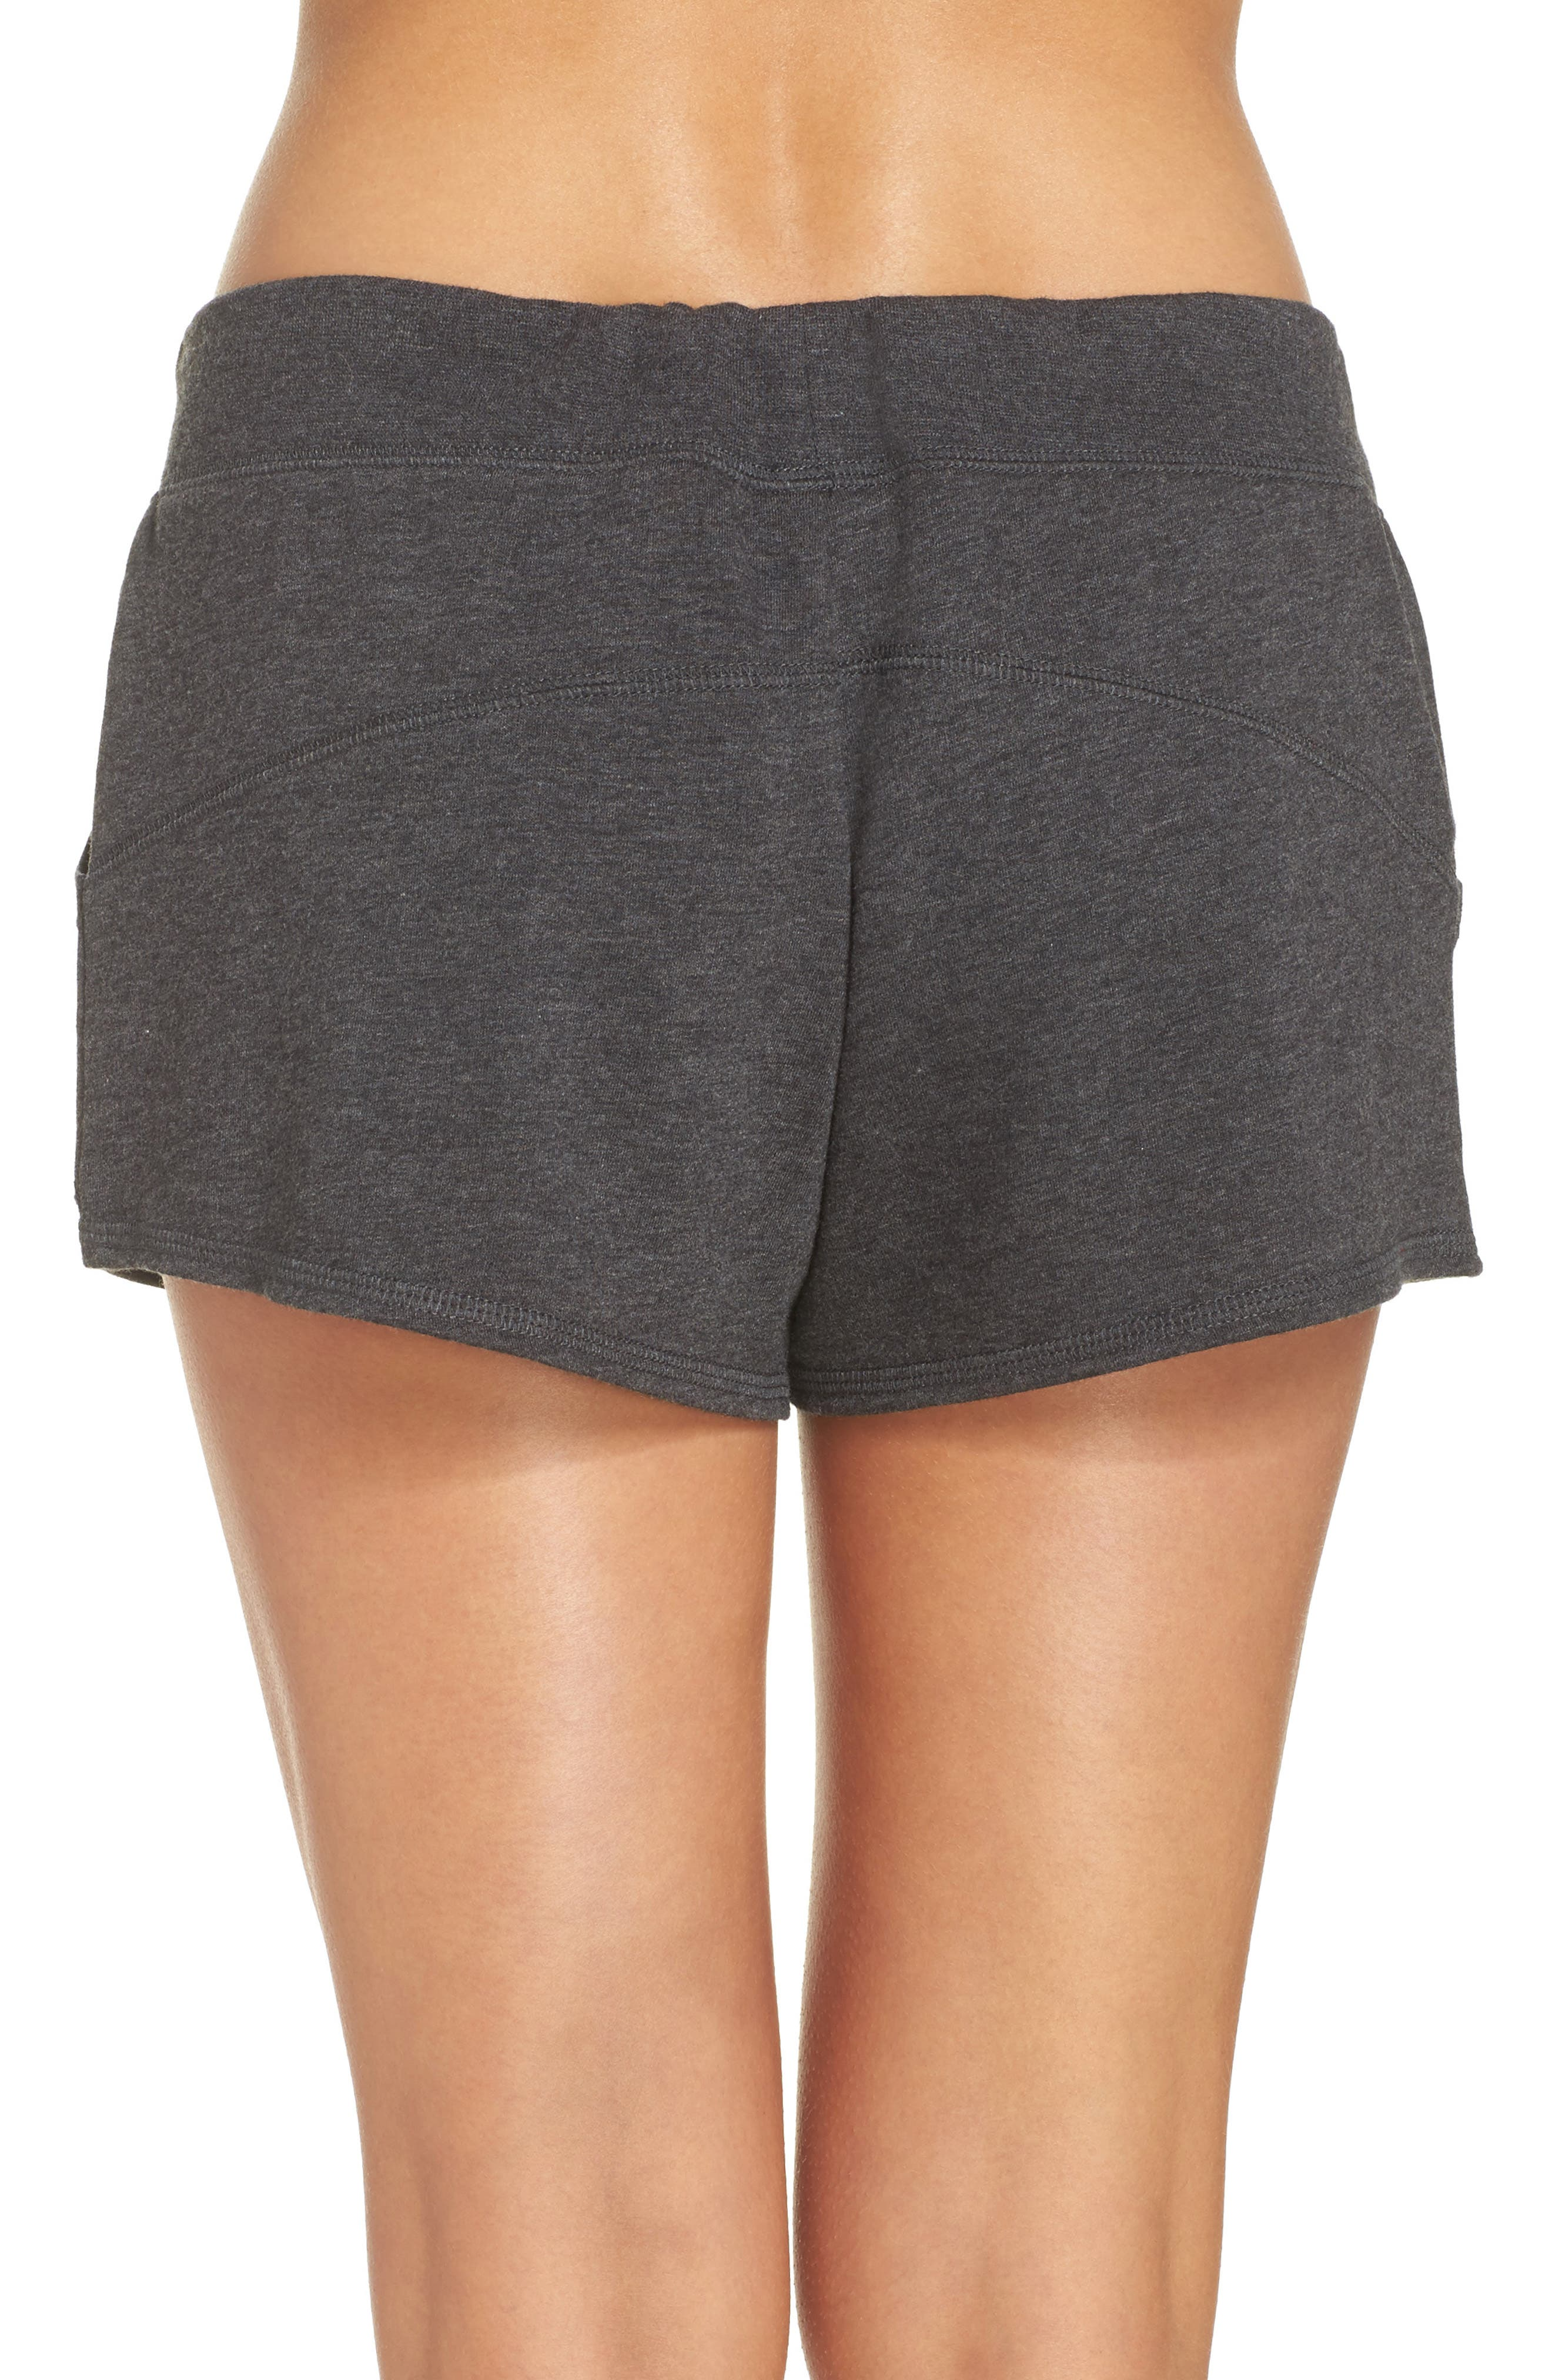 Down To The Details Lounge Shorts,                             Alternate thumbnail 2, color,                             030